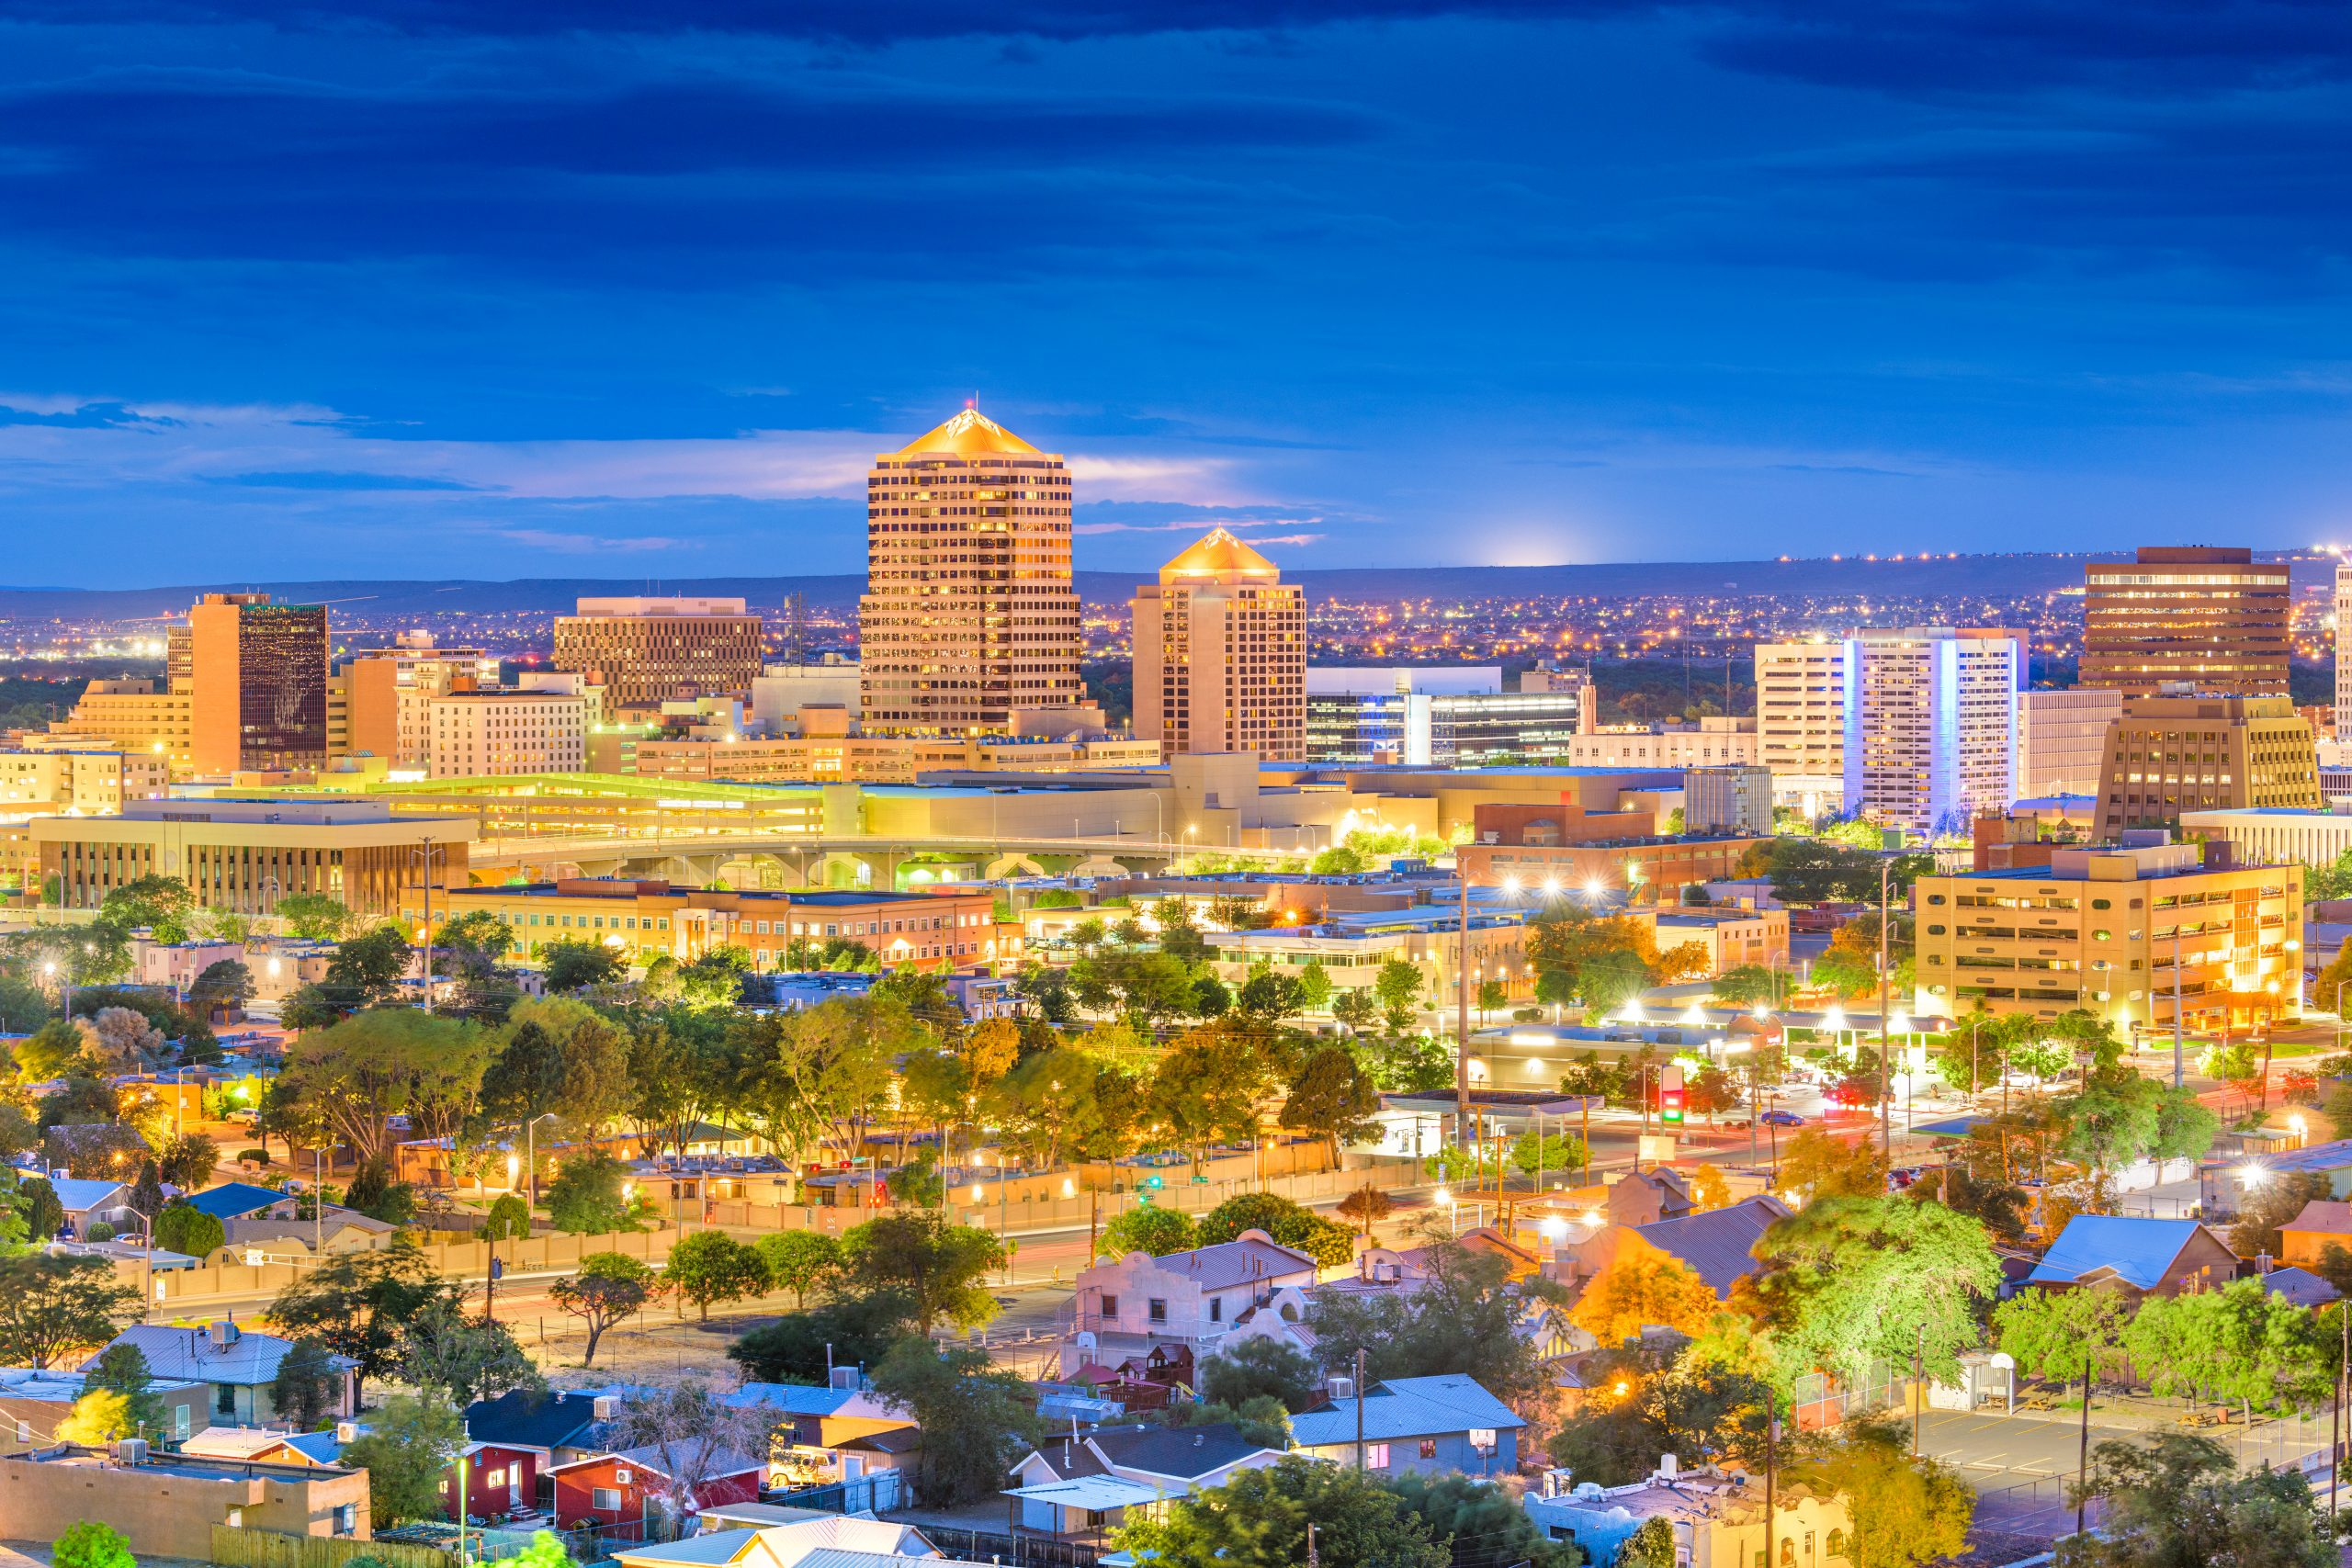 The beautiful Downtown Albuquerque, New, Mexico, skyline captured at twilight.